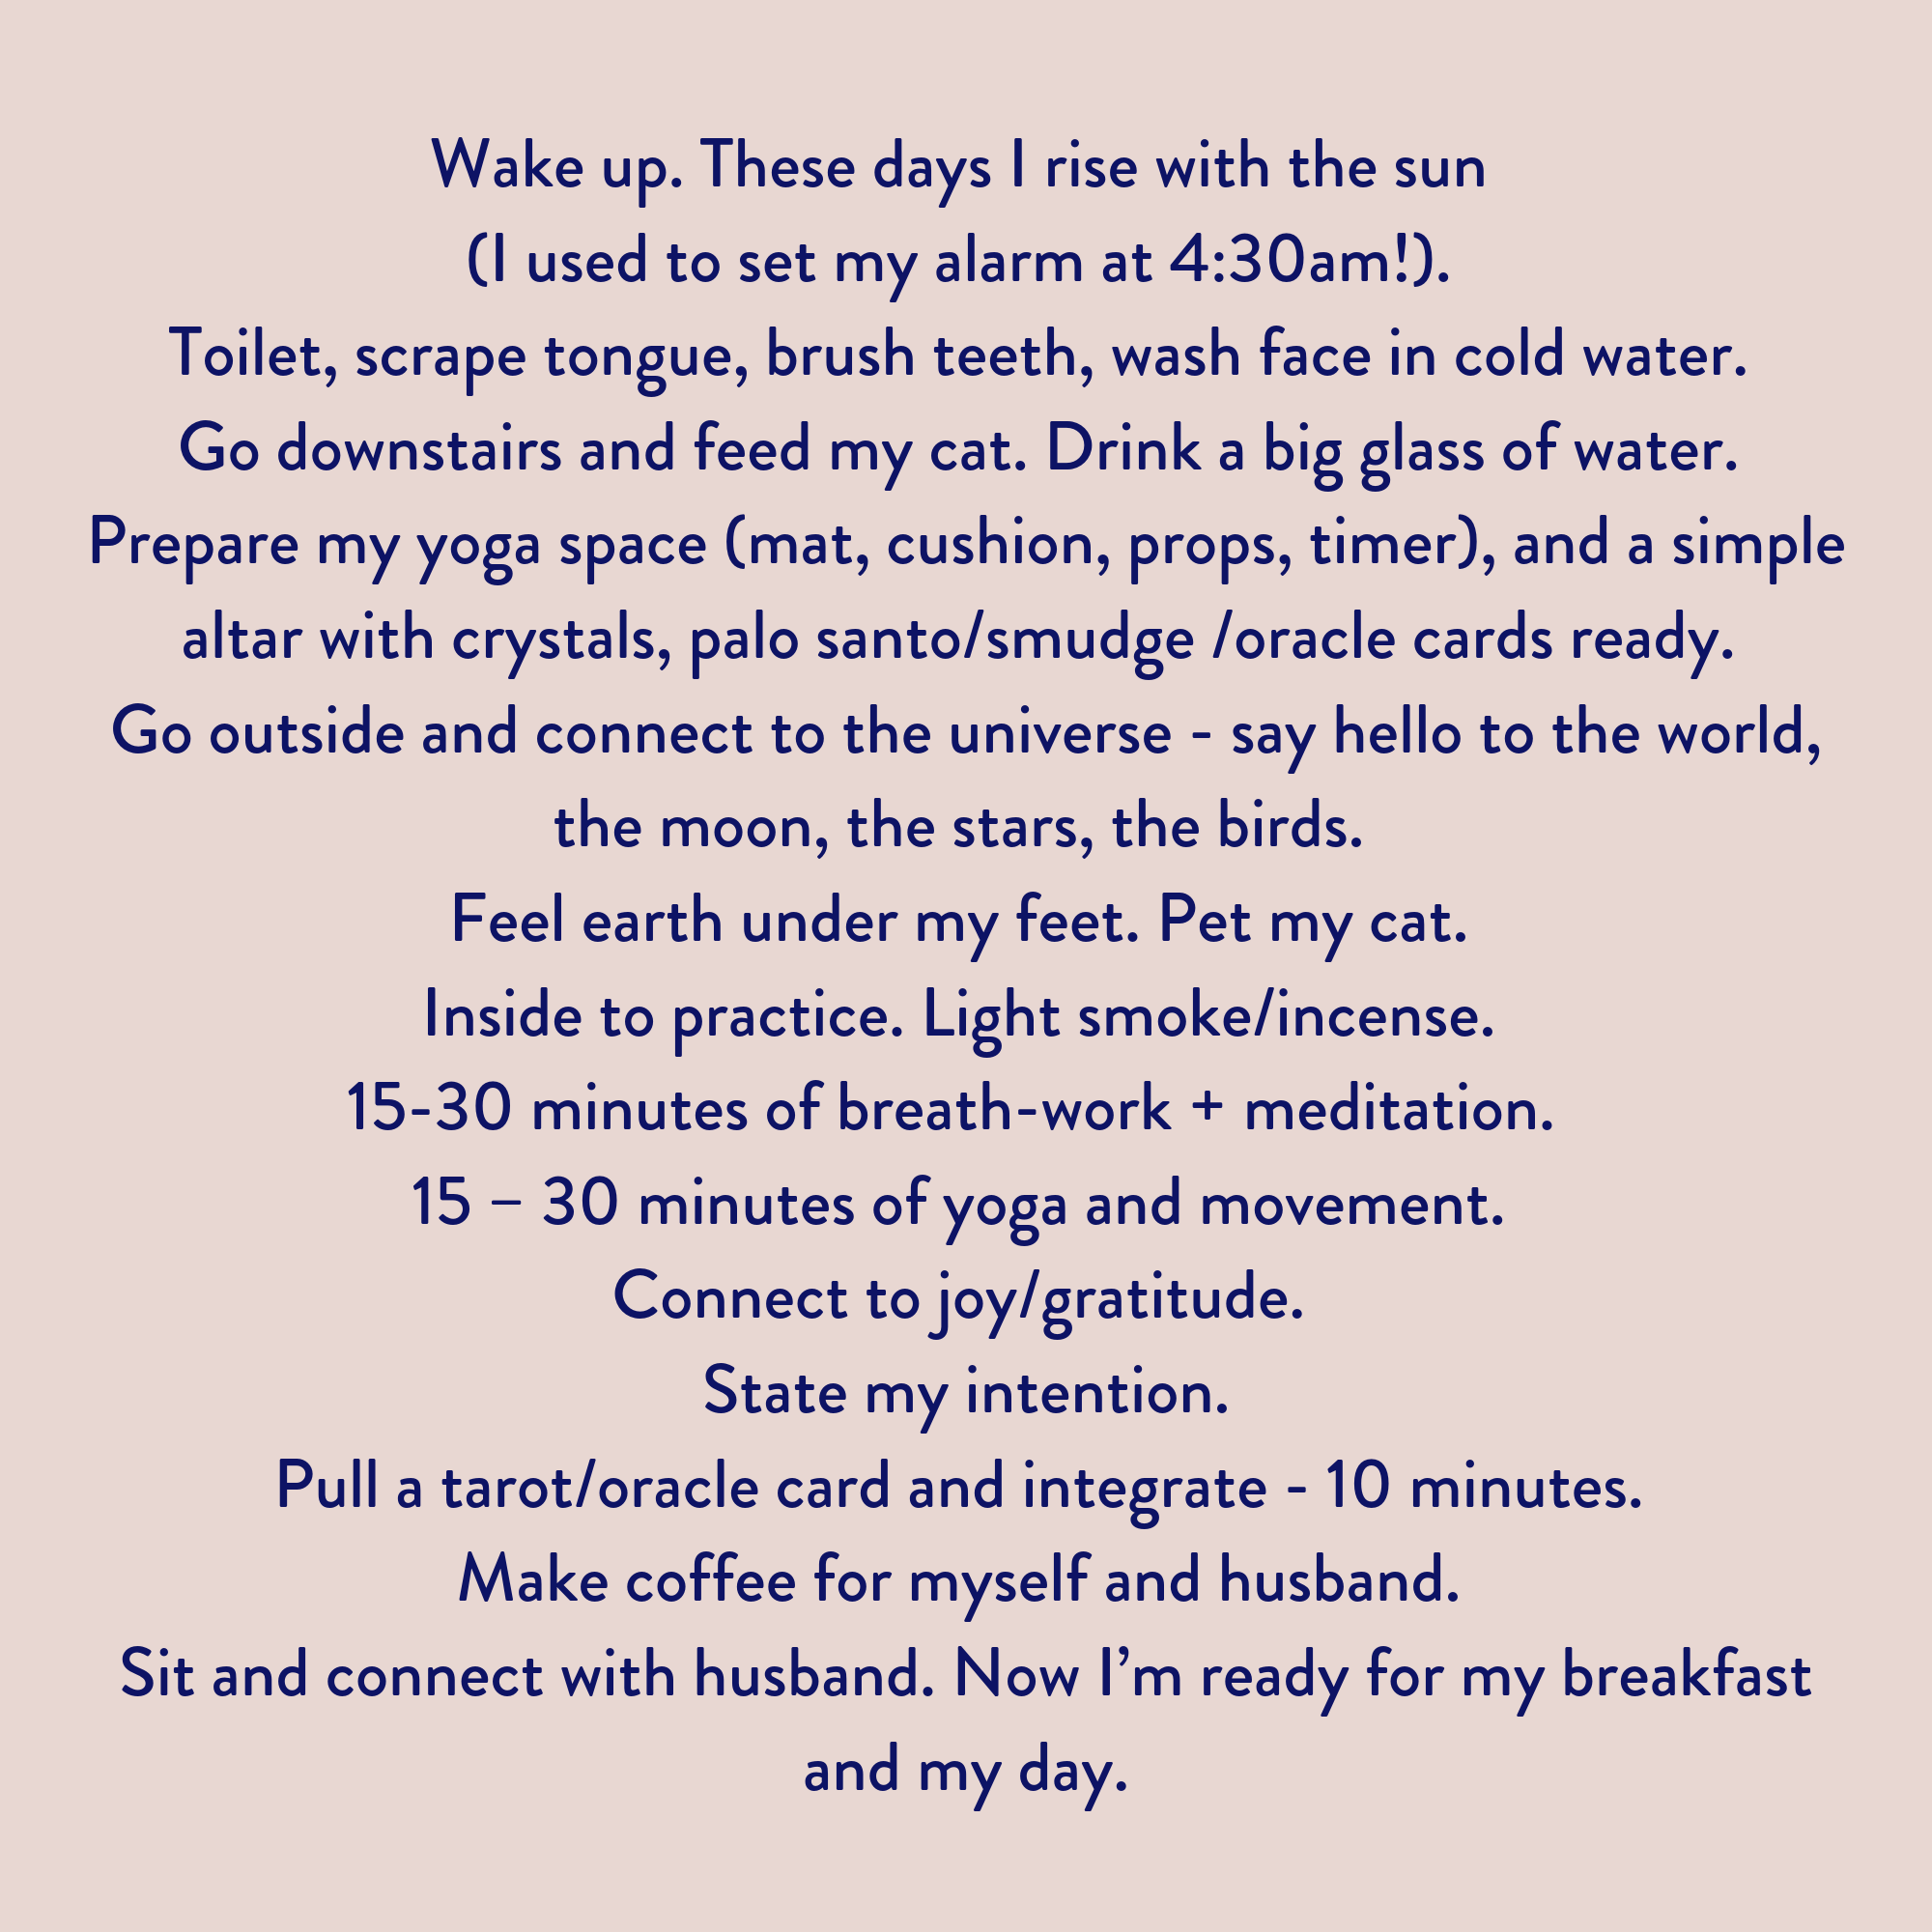 Wake up, these days I rise with the sun (I used to set my alarm at 4_30am!). Toilet, scrape tongue, brush teeth, wash face in cold water. Go downstairs and feed my cat. Drink a big glass of water. Prepare my yoga spa.png